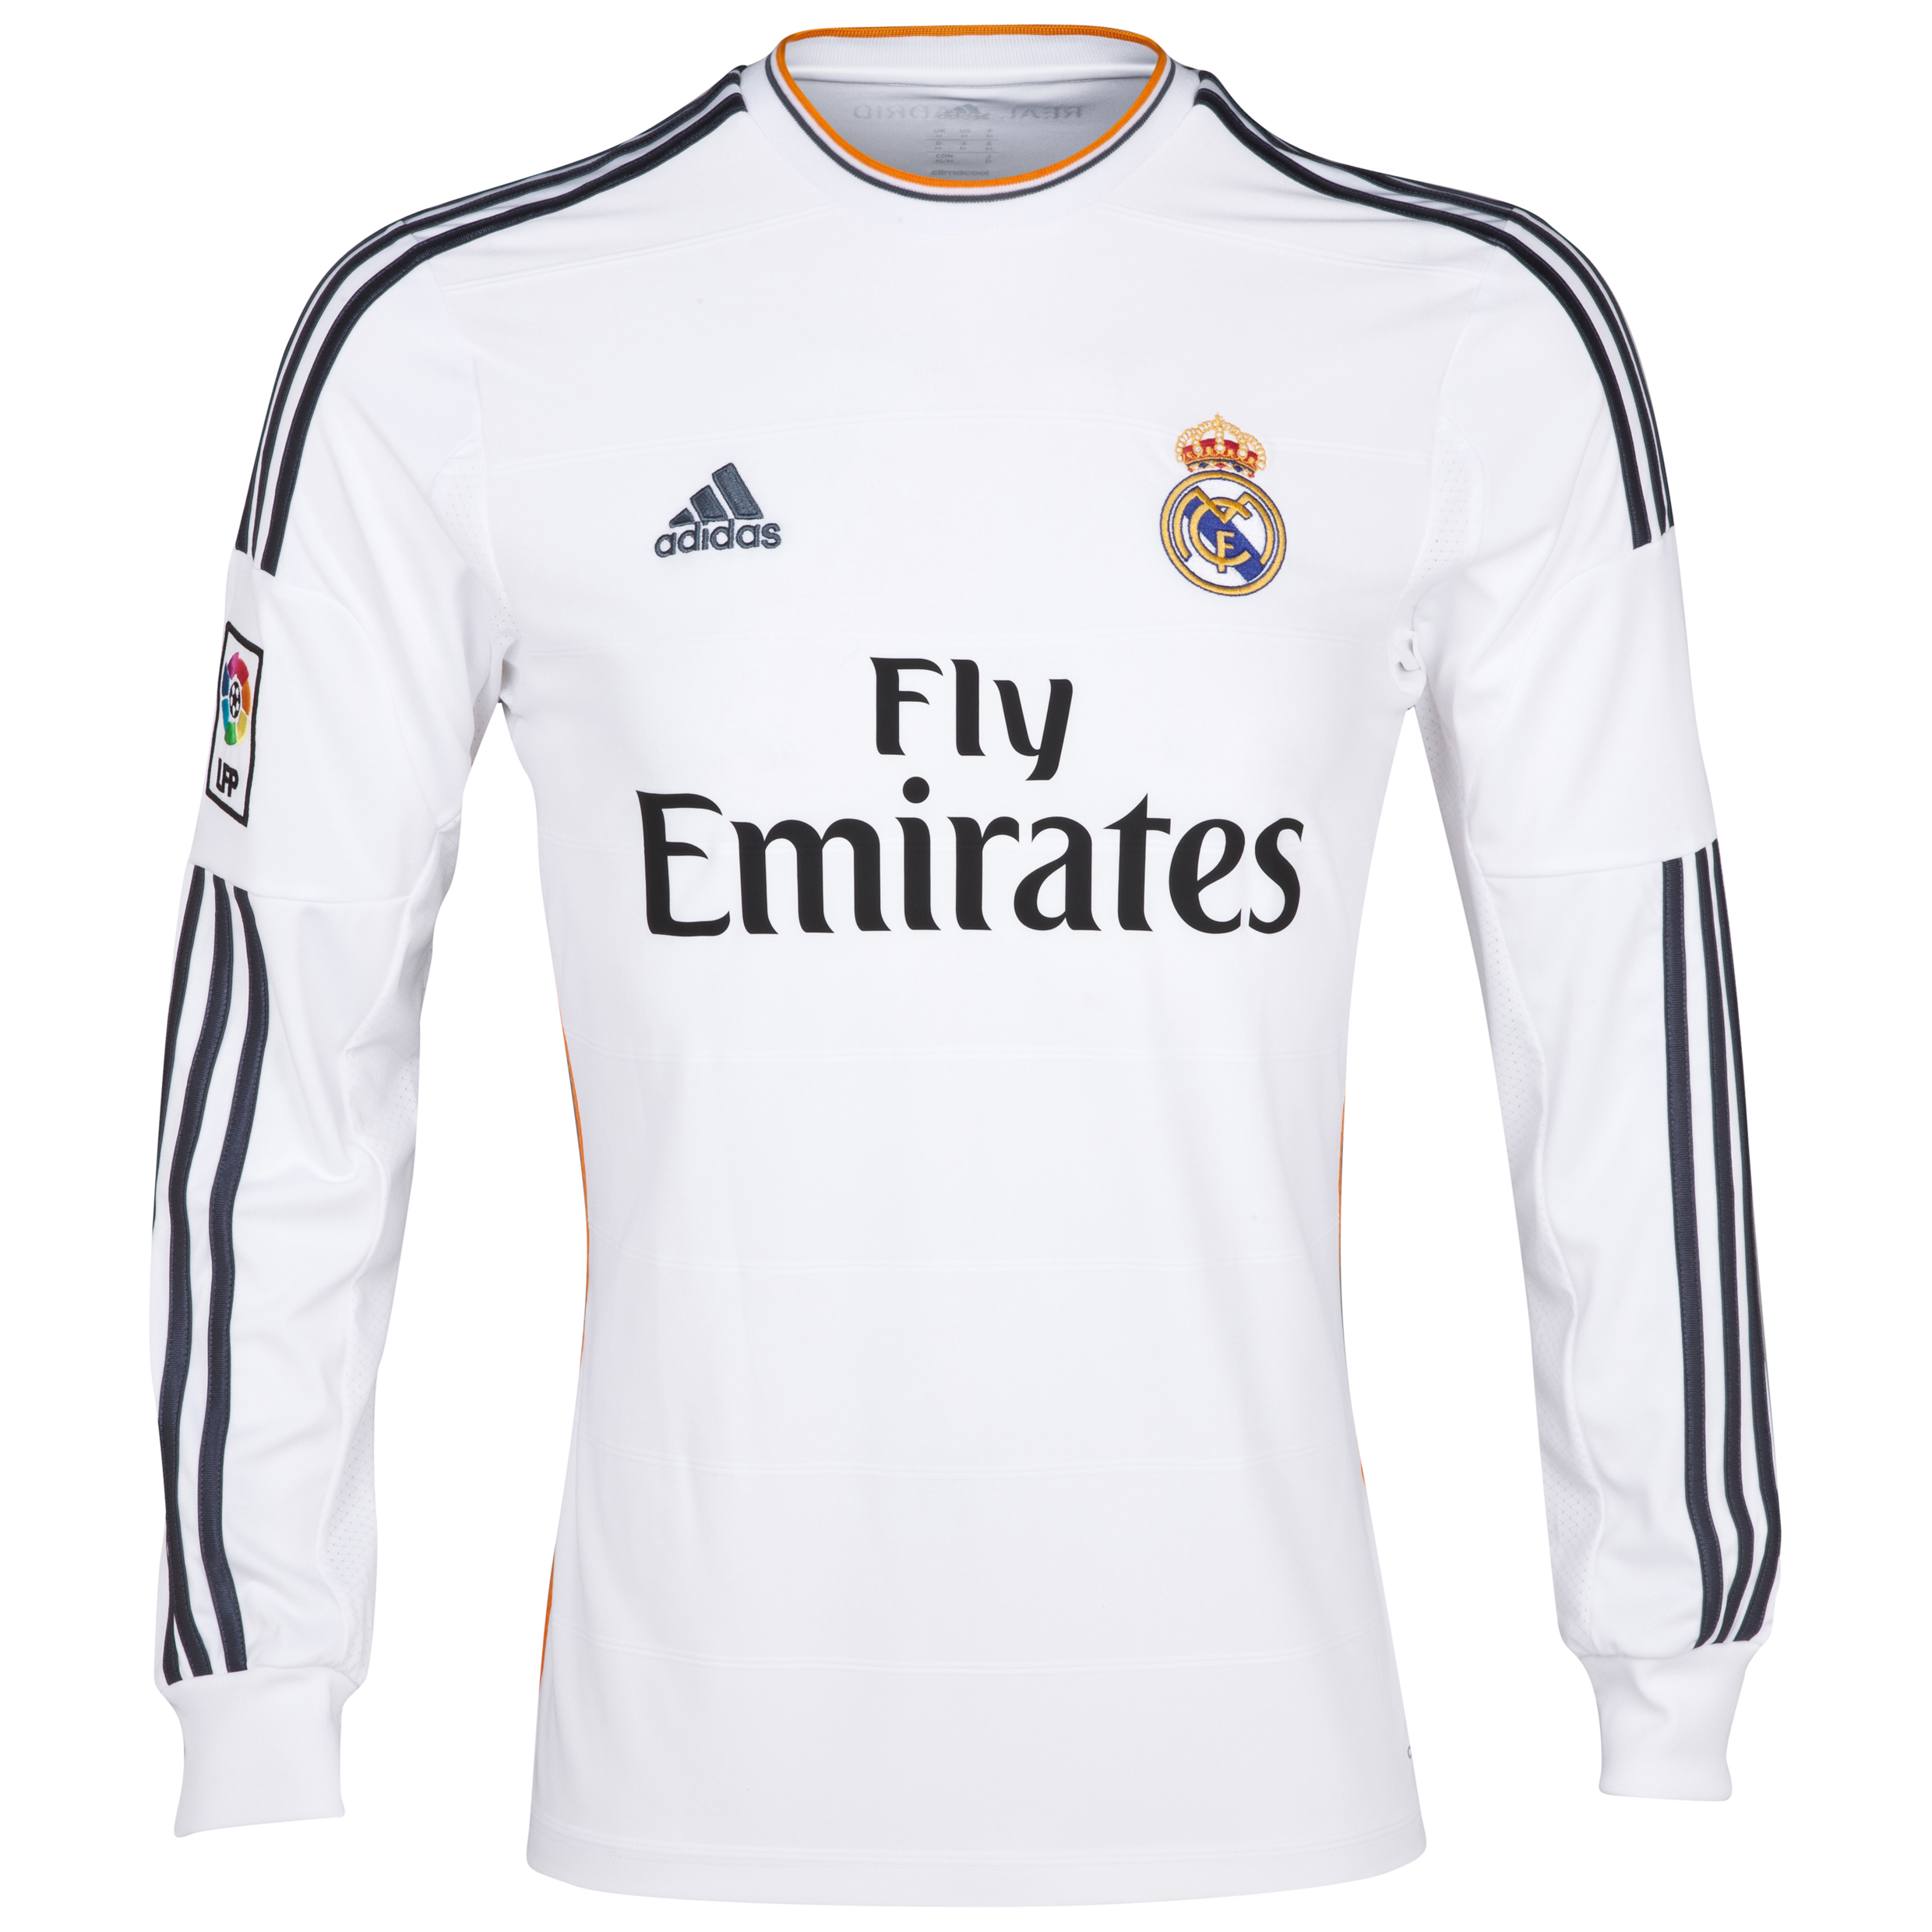 Real Madrid Home Shirt 2013/14 Long Sleeve